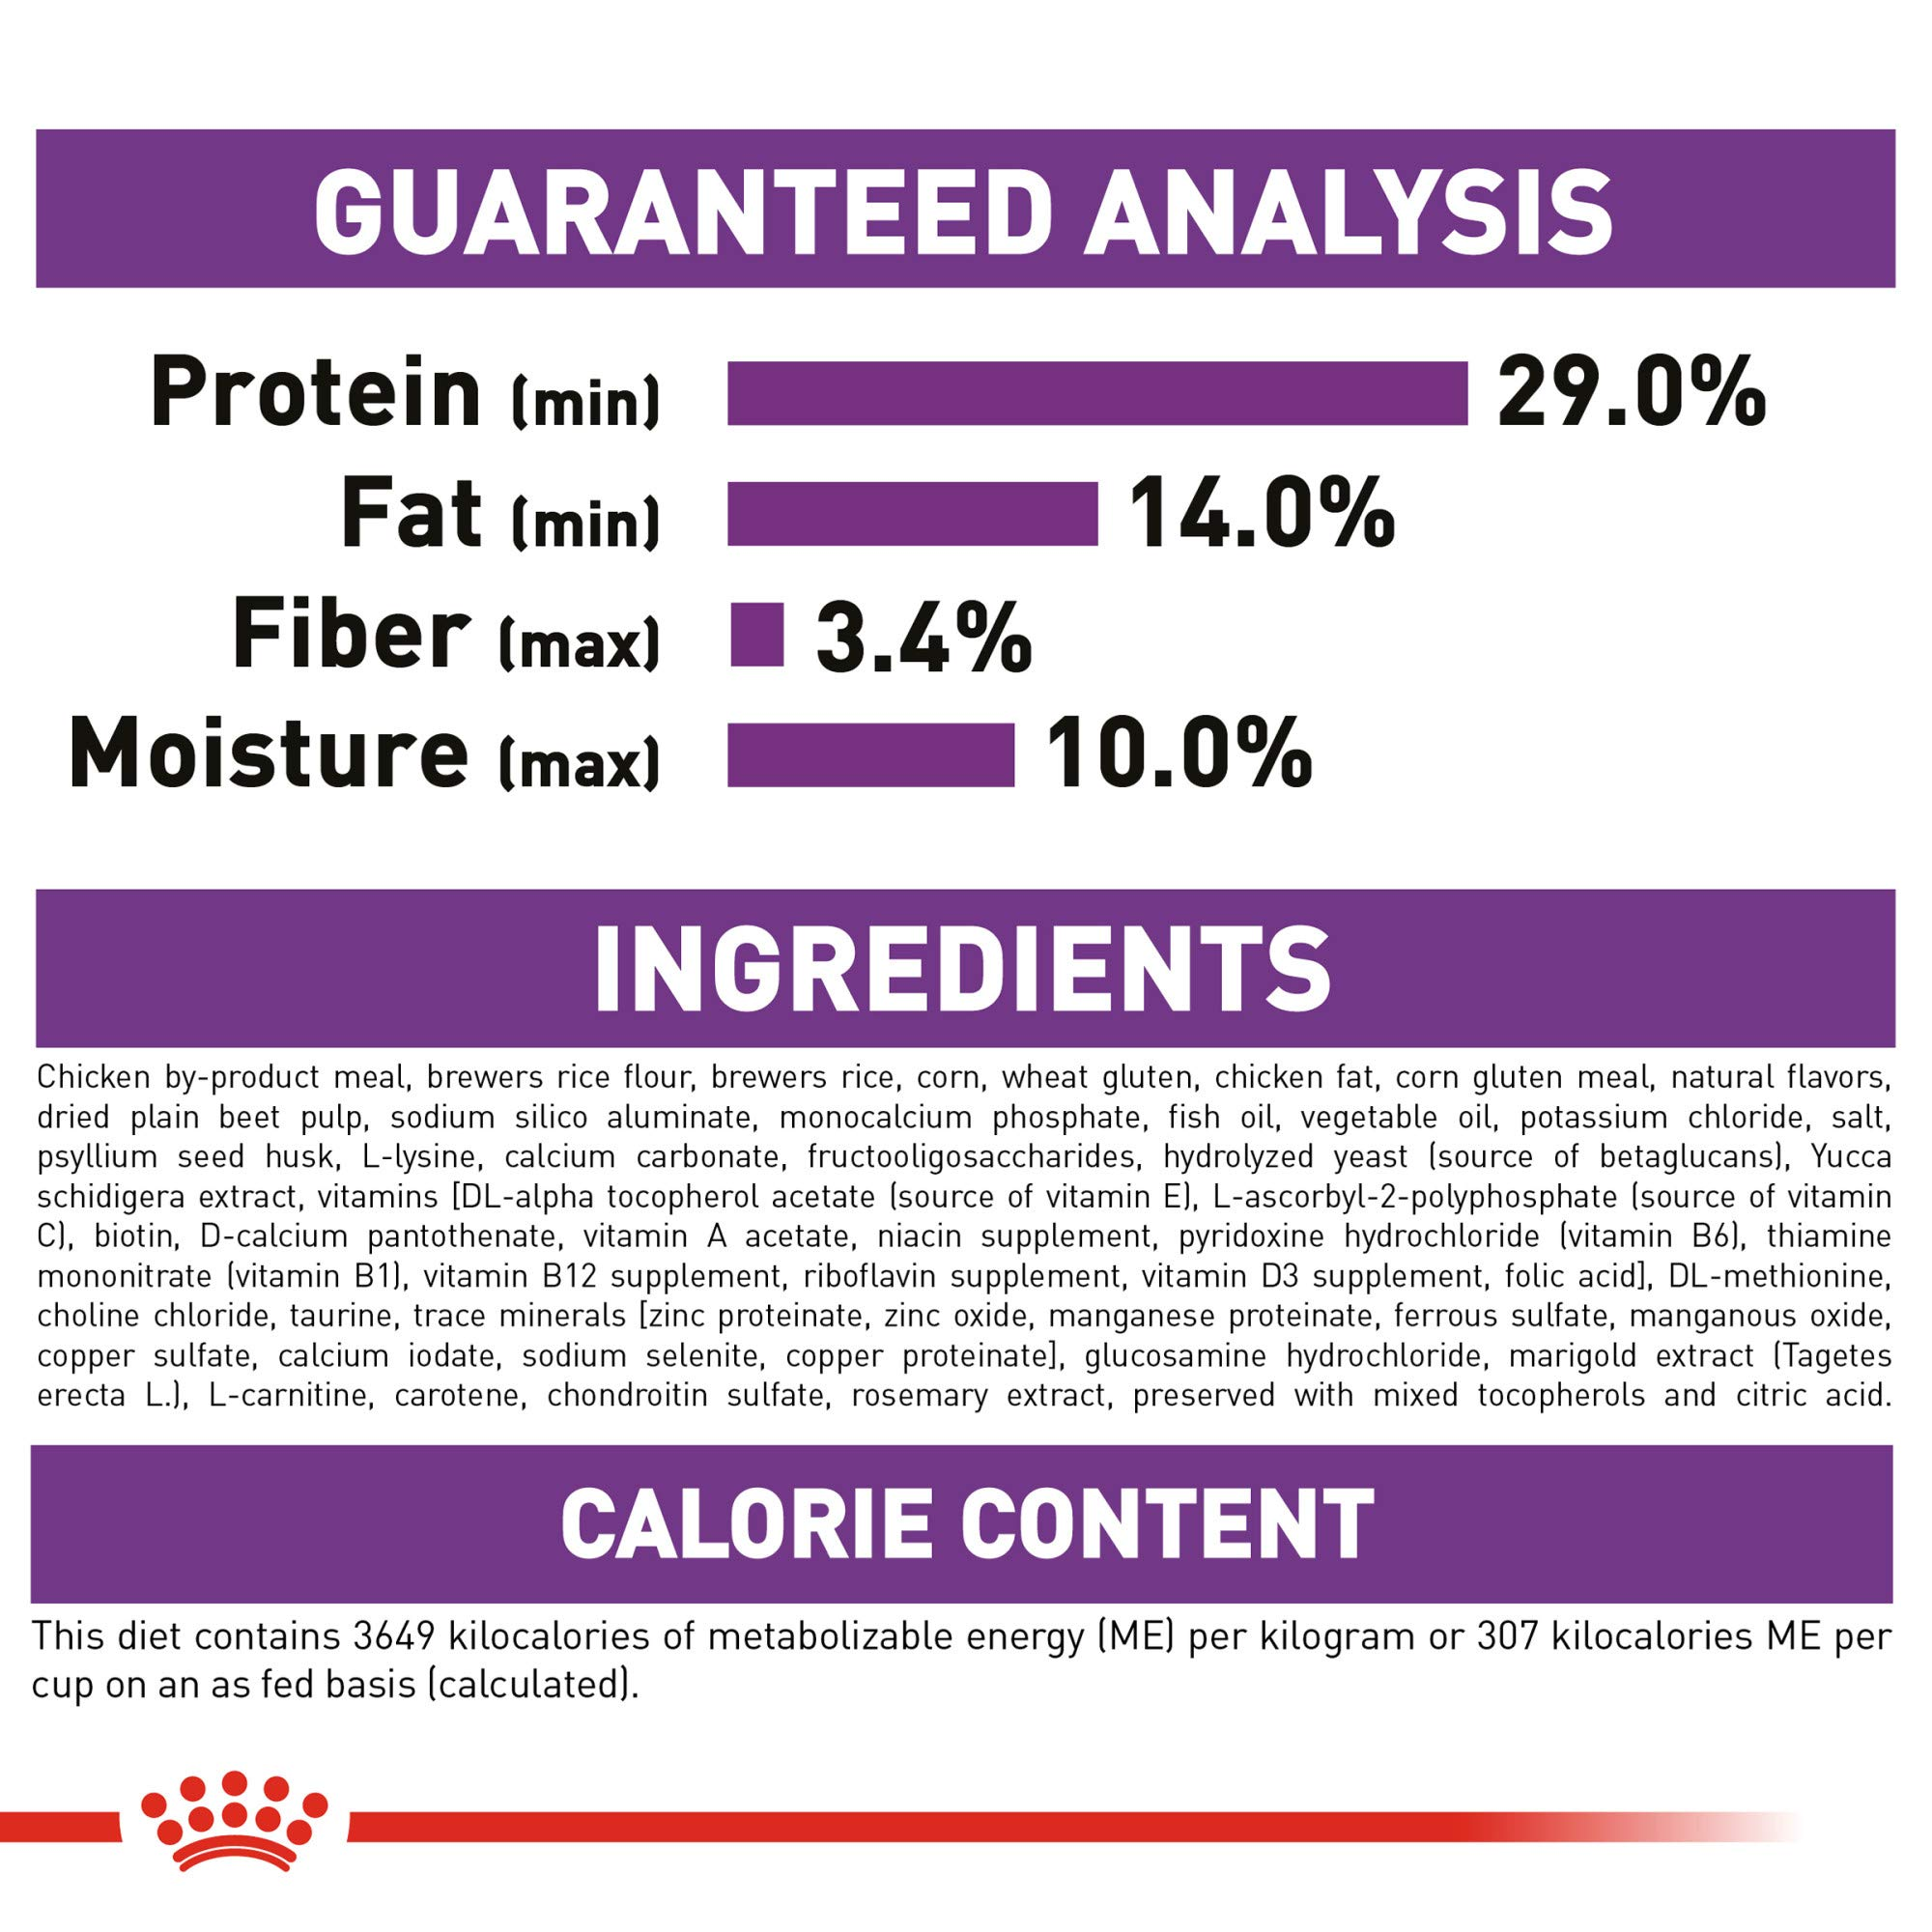 Royal Canin Giant Junior Dry Puppy Food, 30 Lb. by Royal Canin (Image #5)